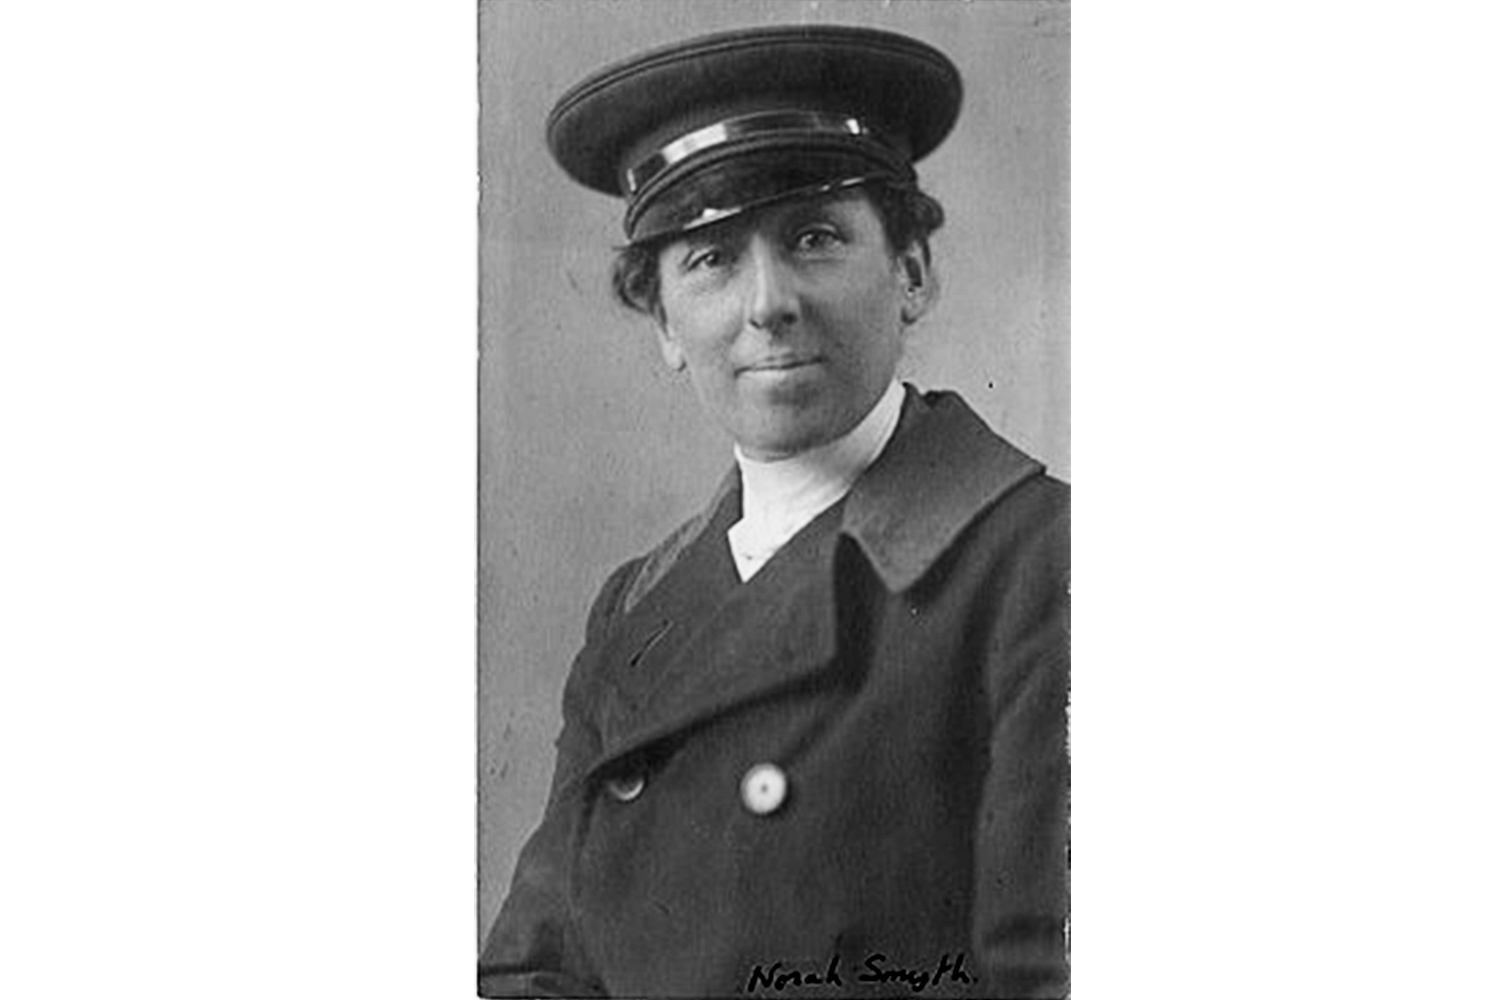 Photograph of Norah Smyth, Bow suffragette, photographer and chauffeur to Sylvia Pankhurst